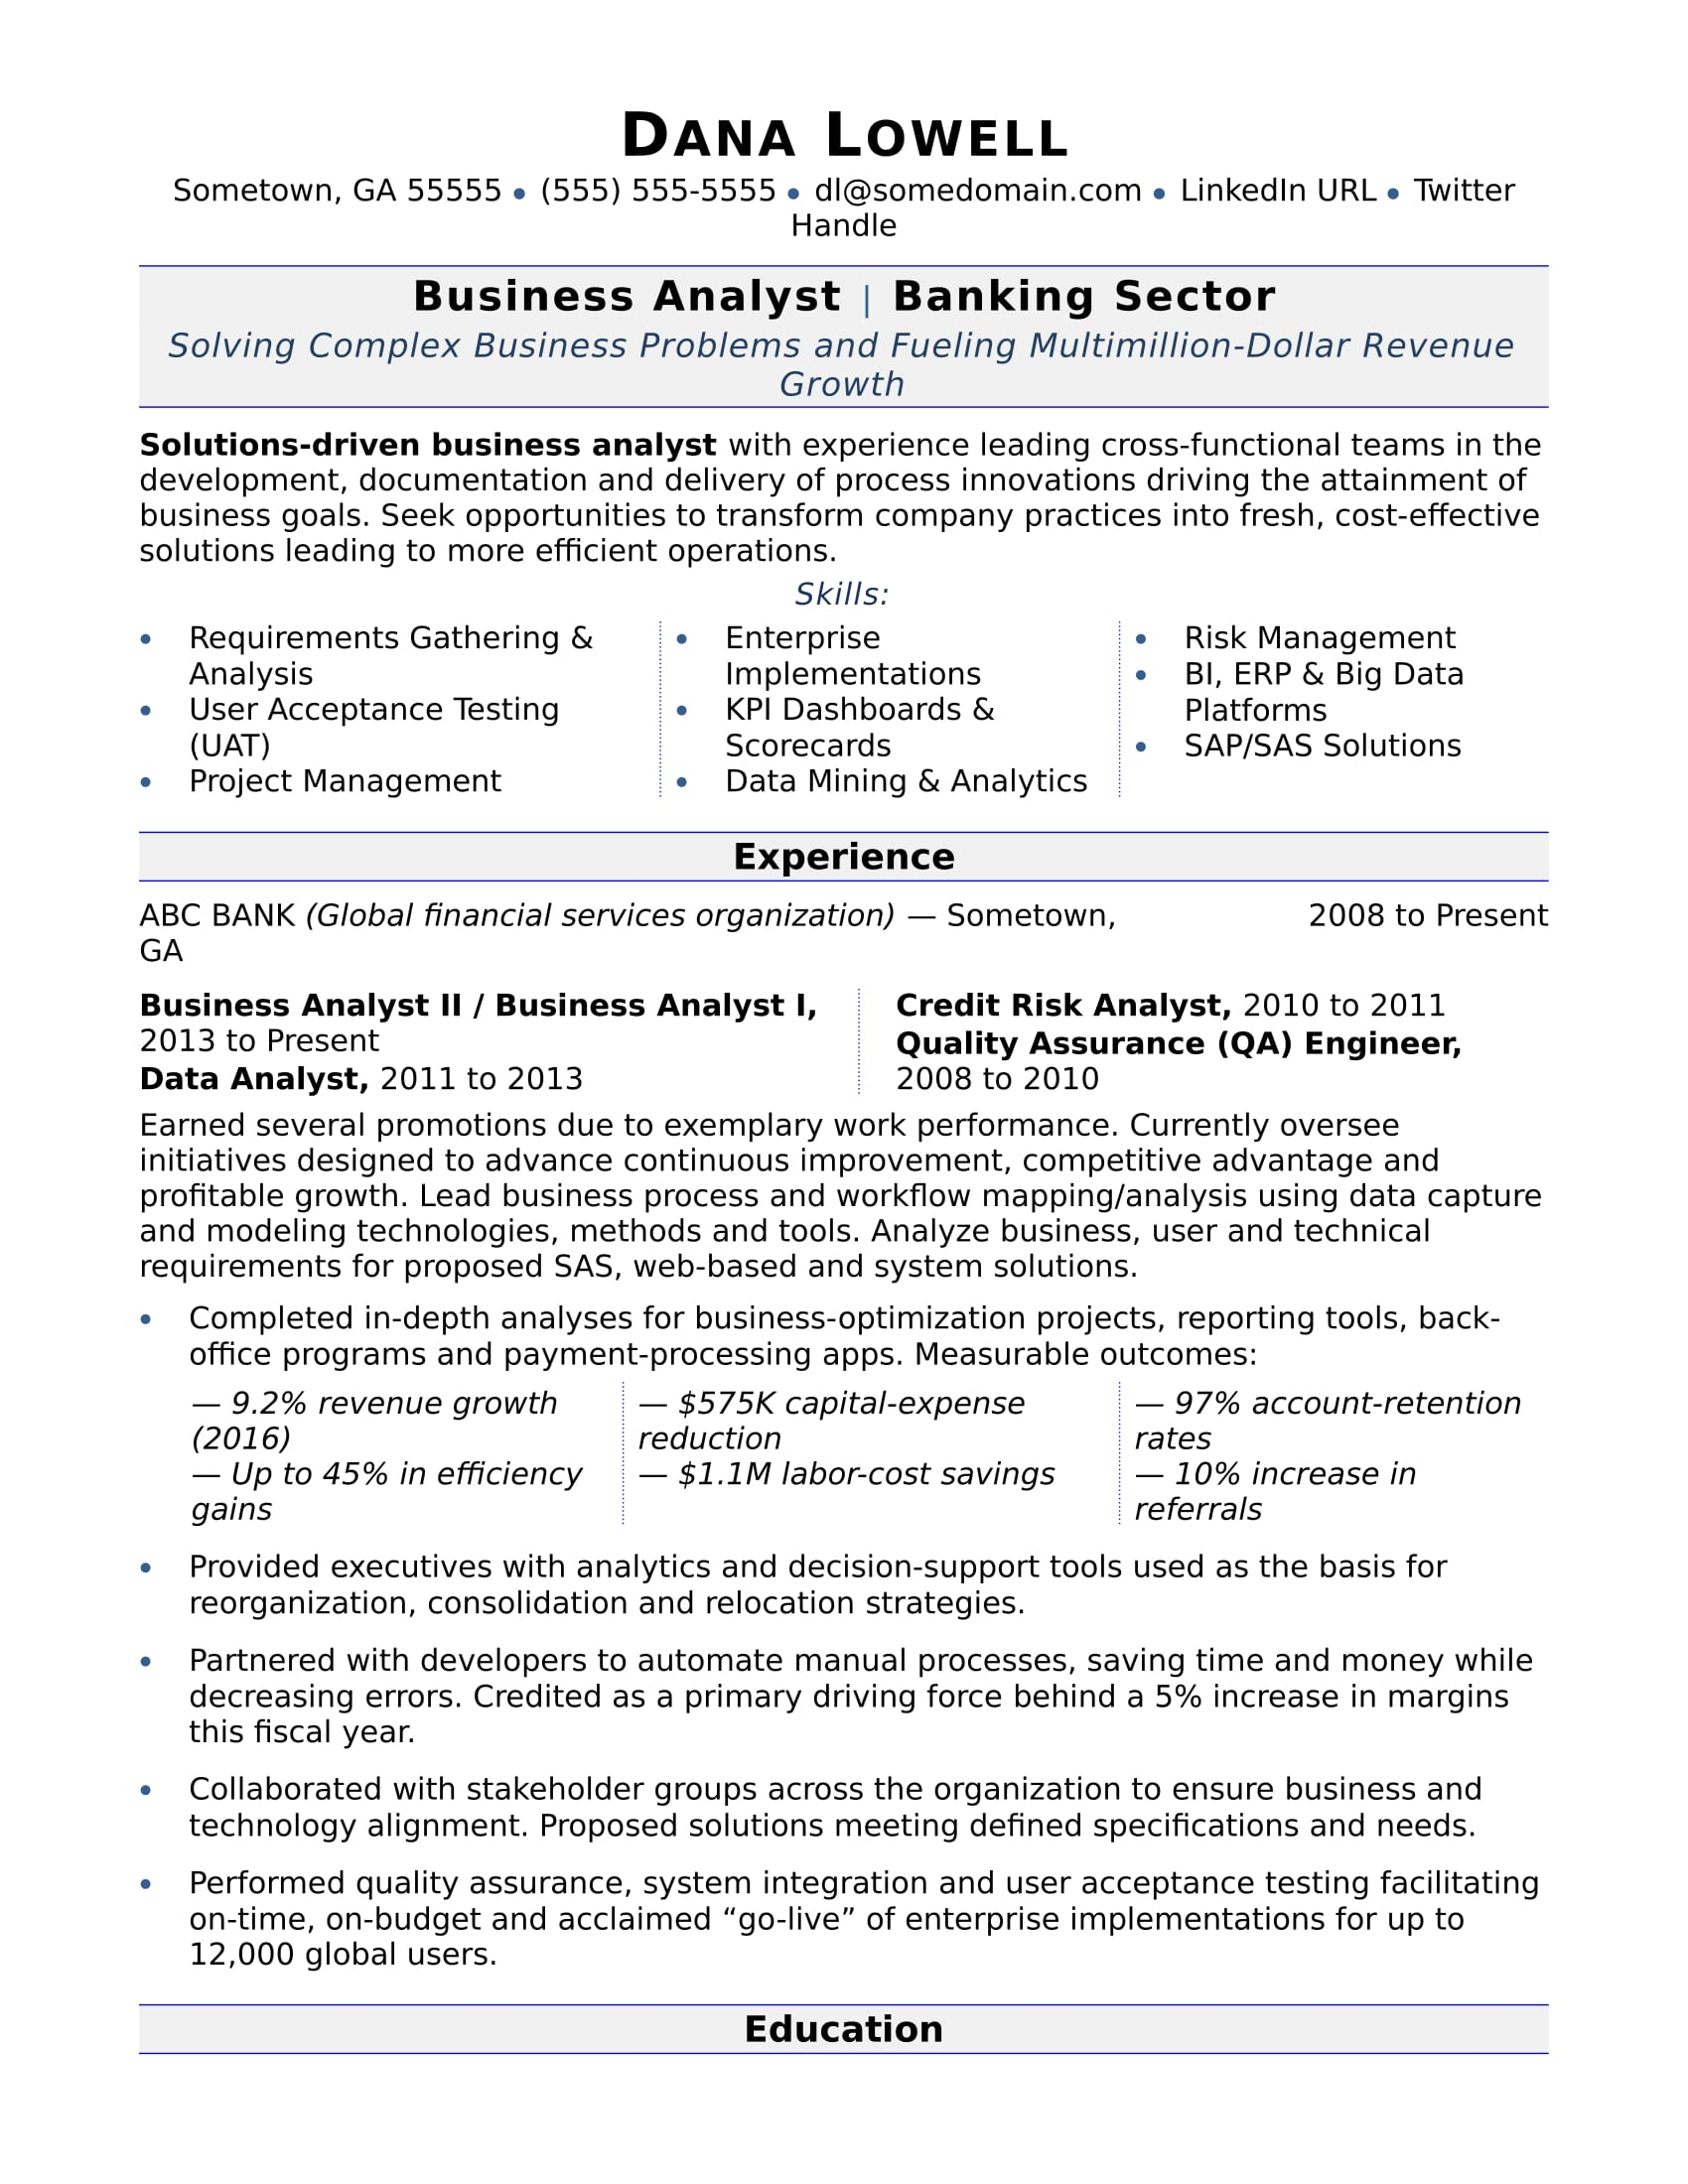 Superior Business Analyst Resume Sample